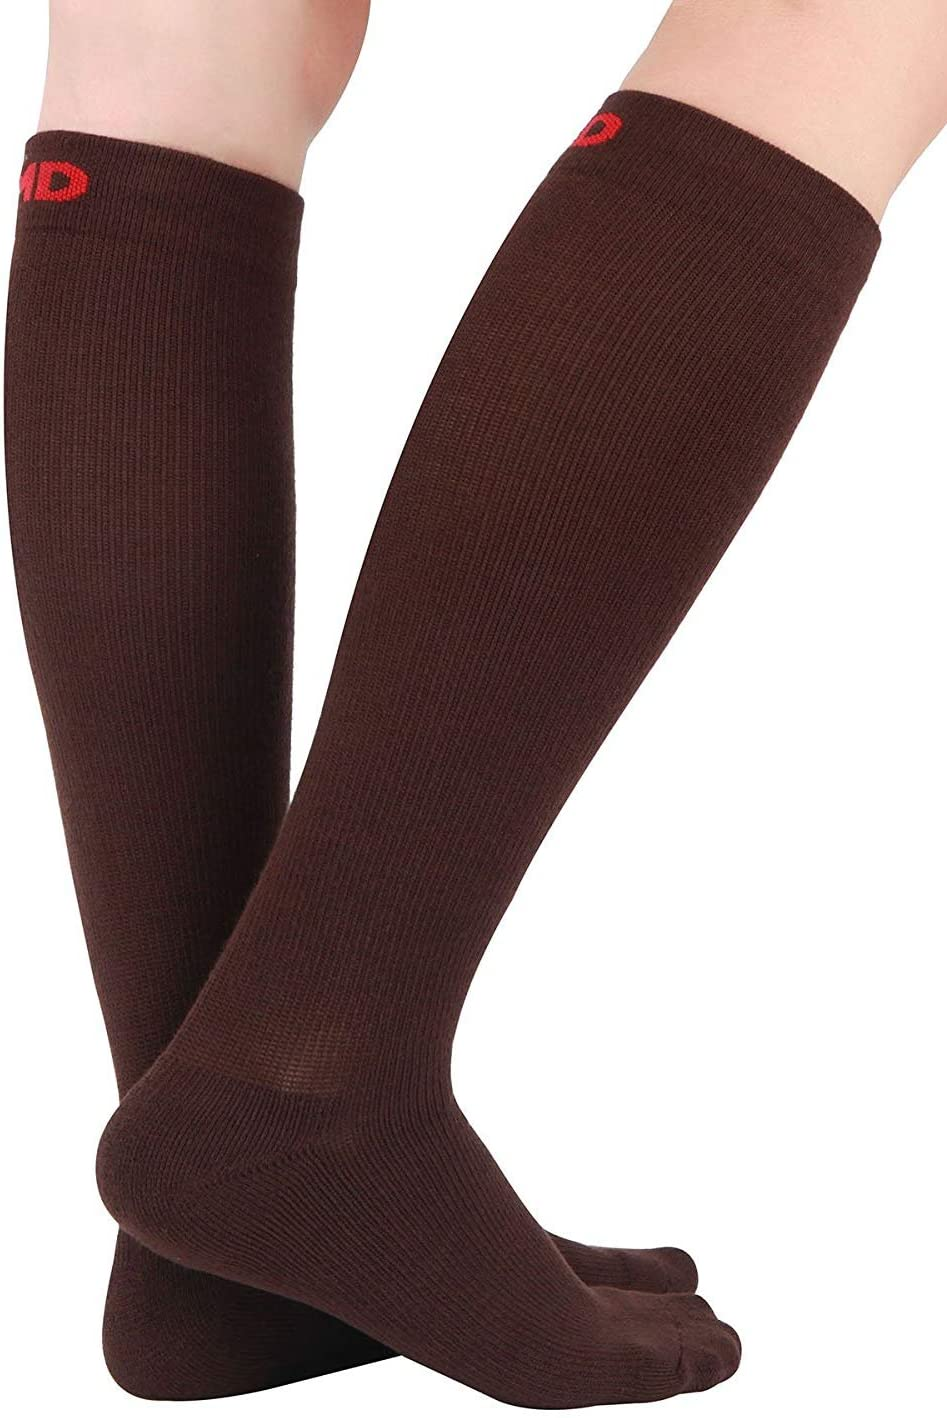 +MD 3 Pairs Bamboo Compression Socks 8-15mmHg for Women & Men Moisture Wicking Support Stockings for Airplane Flights, Travel, Nurses, Edema 13-15 Brown